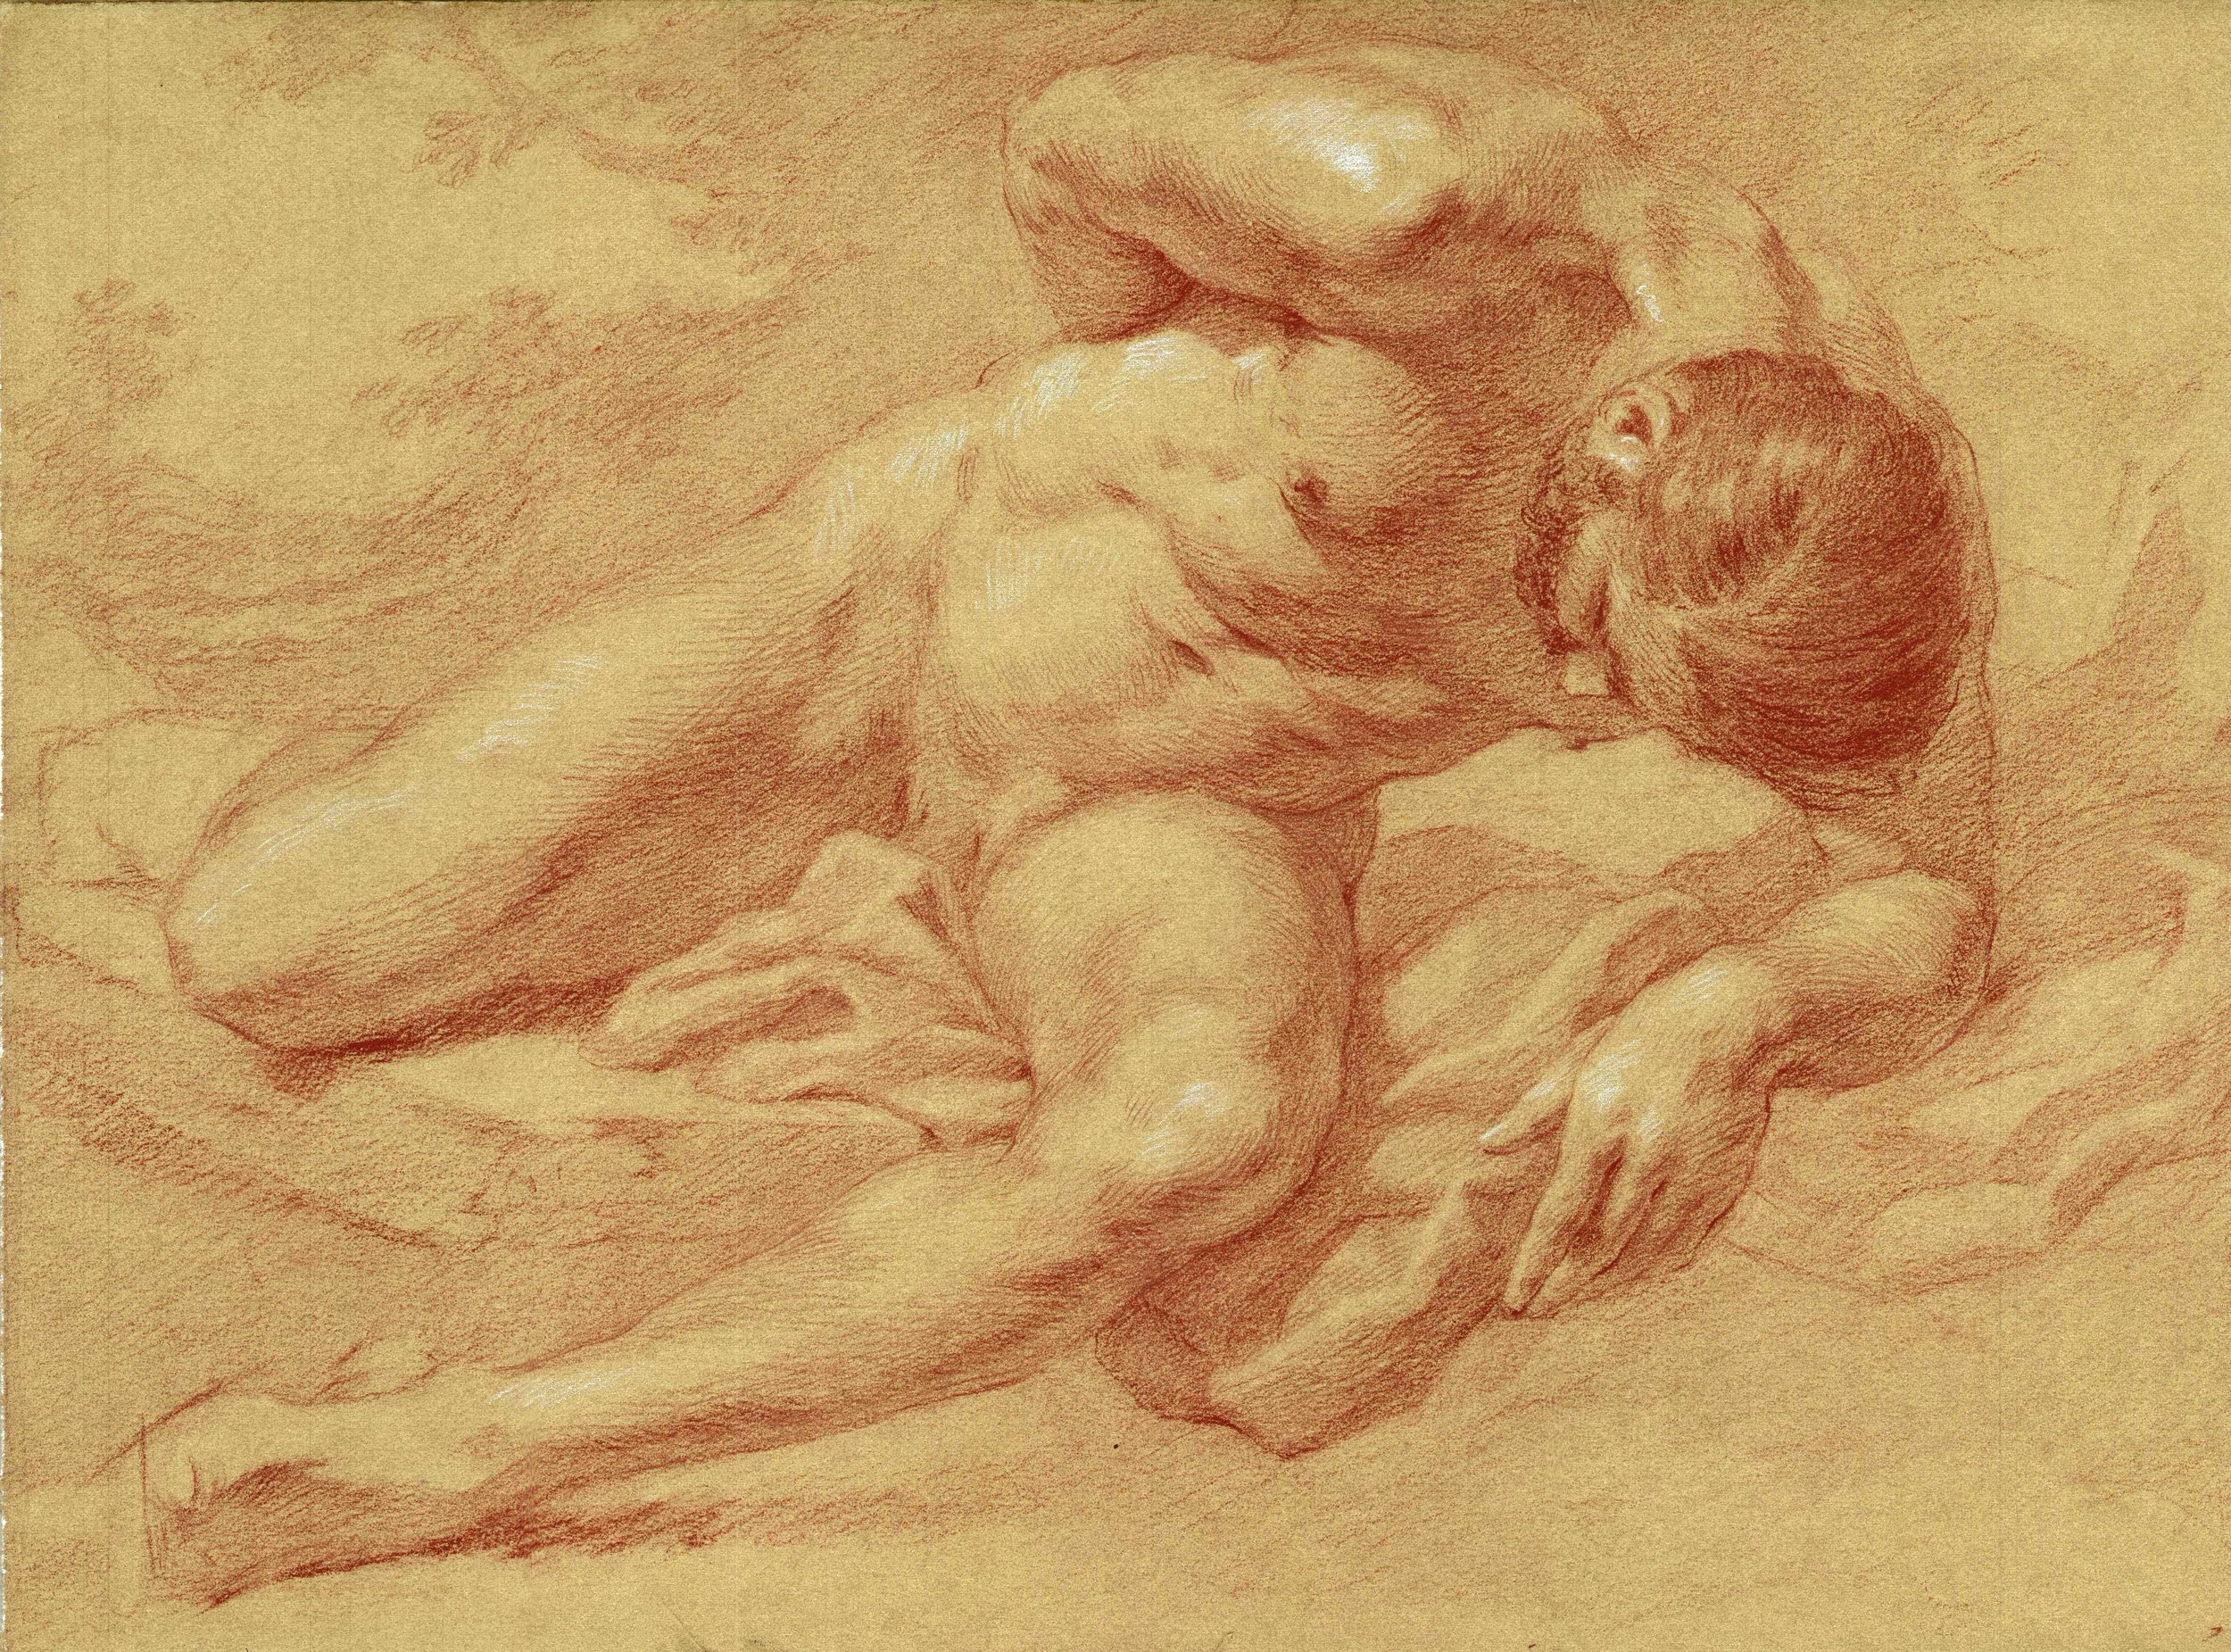 Anthony Baus  (b. 1981)  Nude in attitude of defeat , 2018 16 x 12 in. red chalk on paper